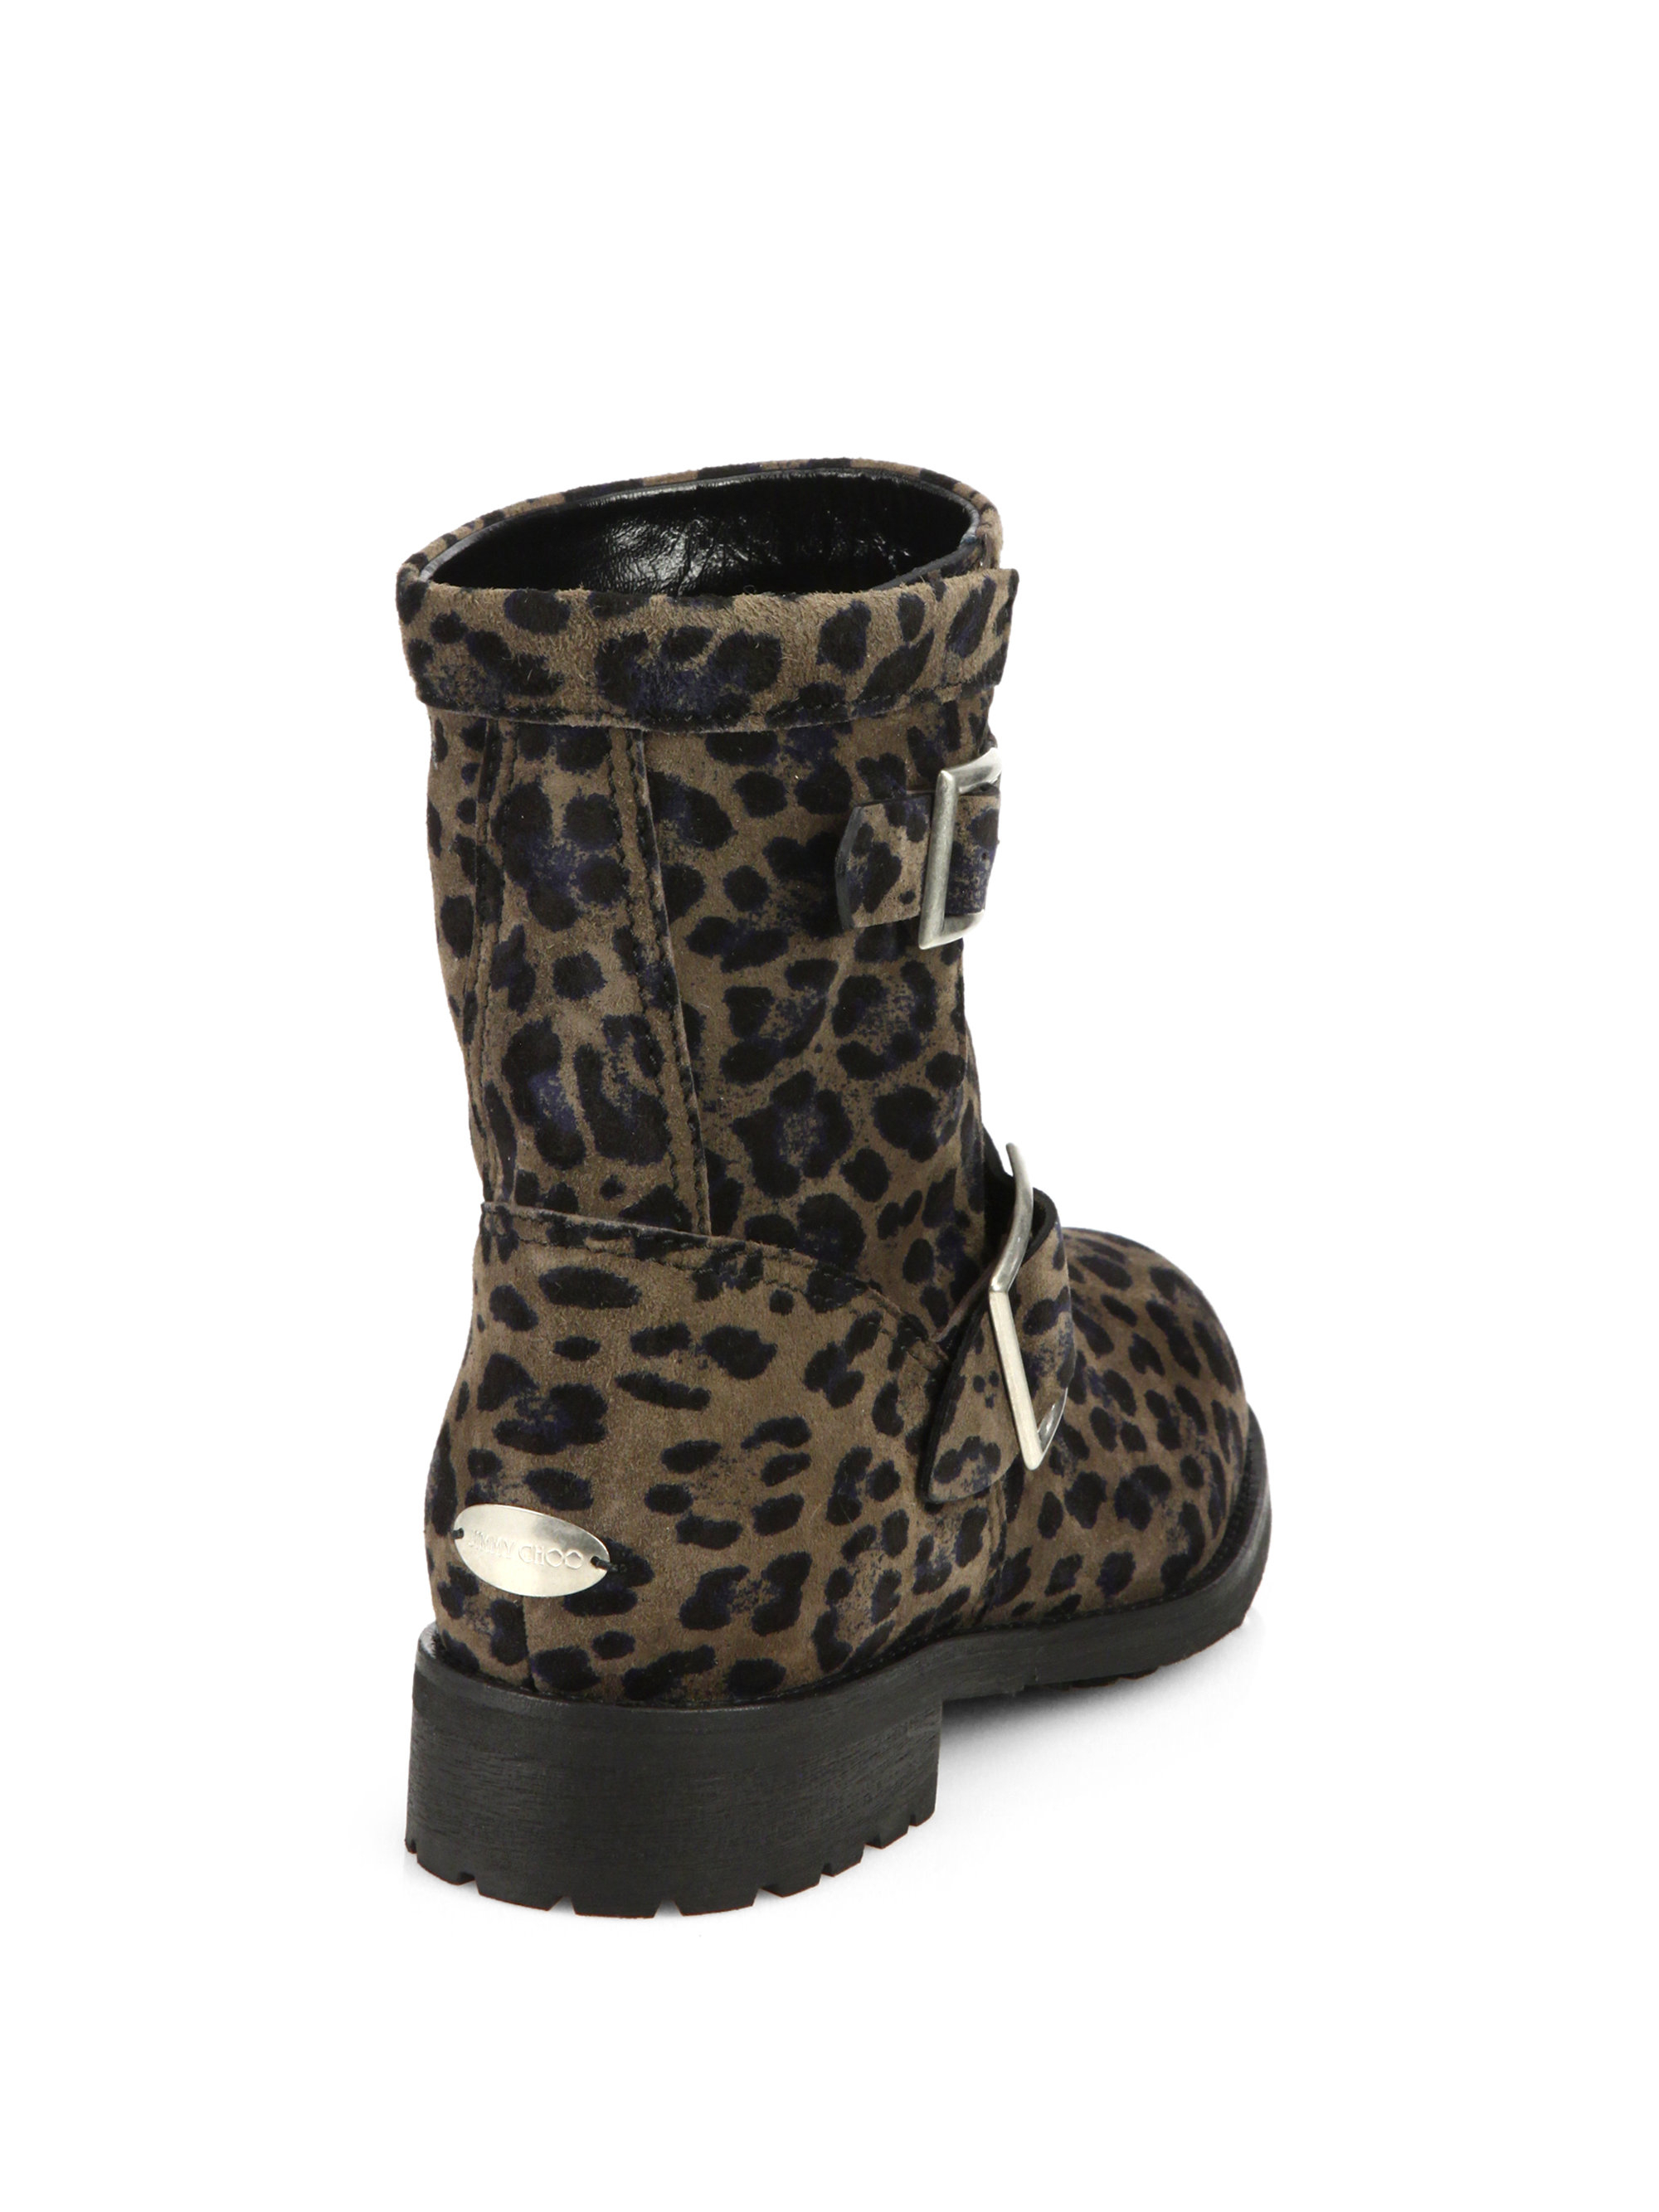 c2fbb1041503 ... breeze studded leather trimmed leopard print calf hair ankle boots in  brown ddb0e 33ff8  get lyst jimmy choo leopard print suede biker boots in  natural ...